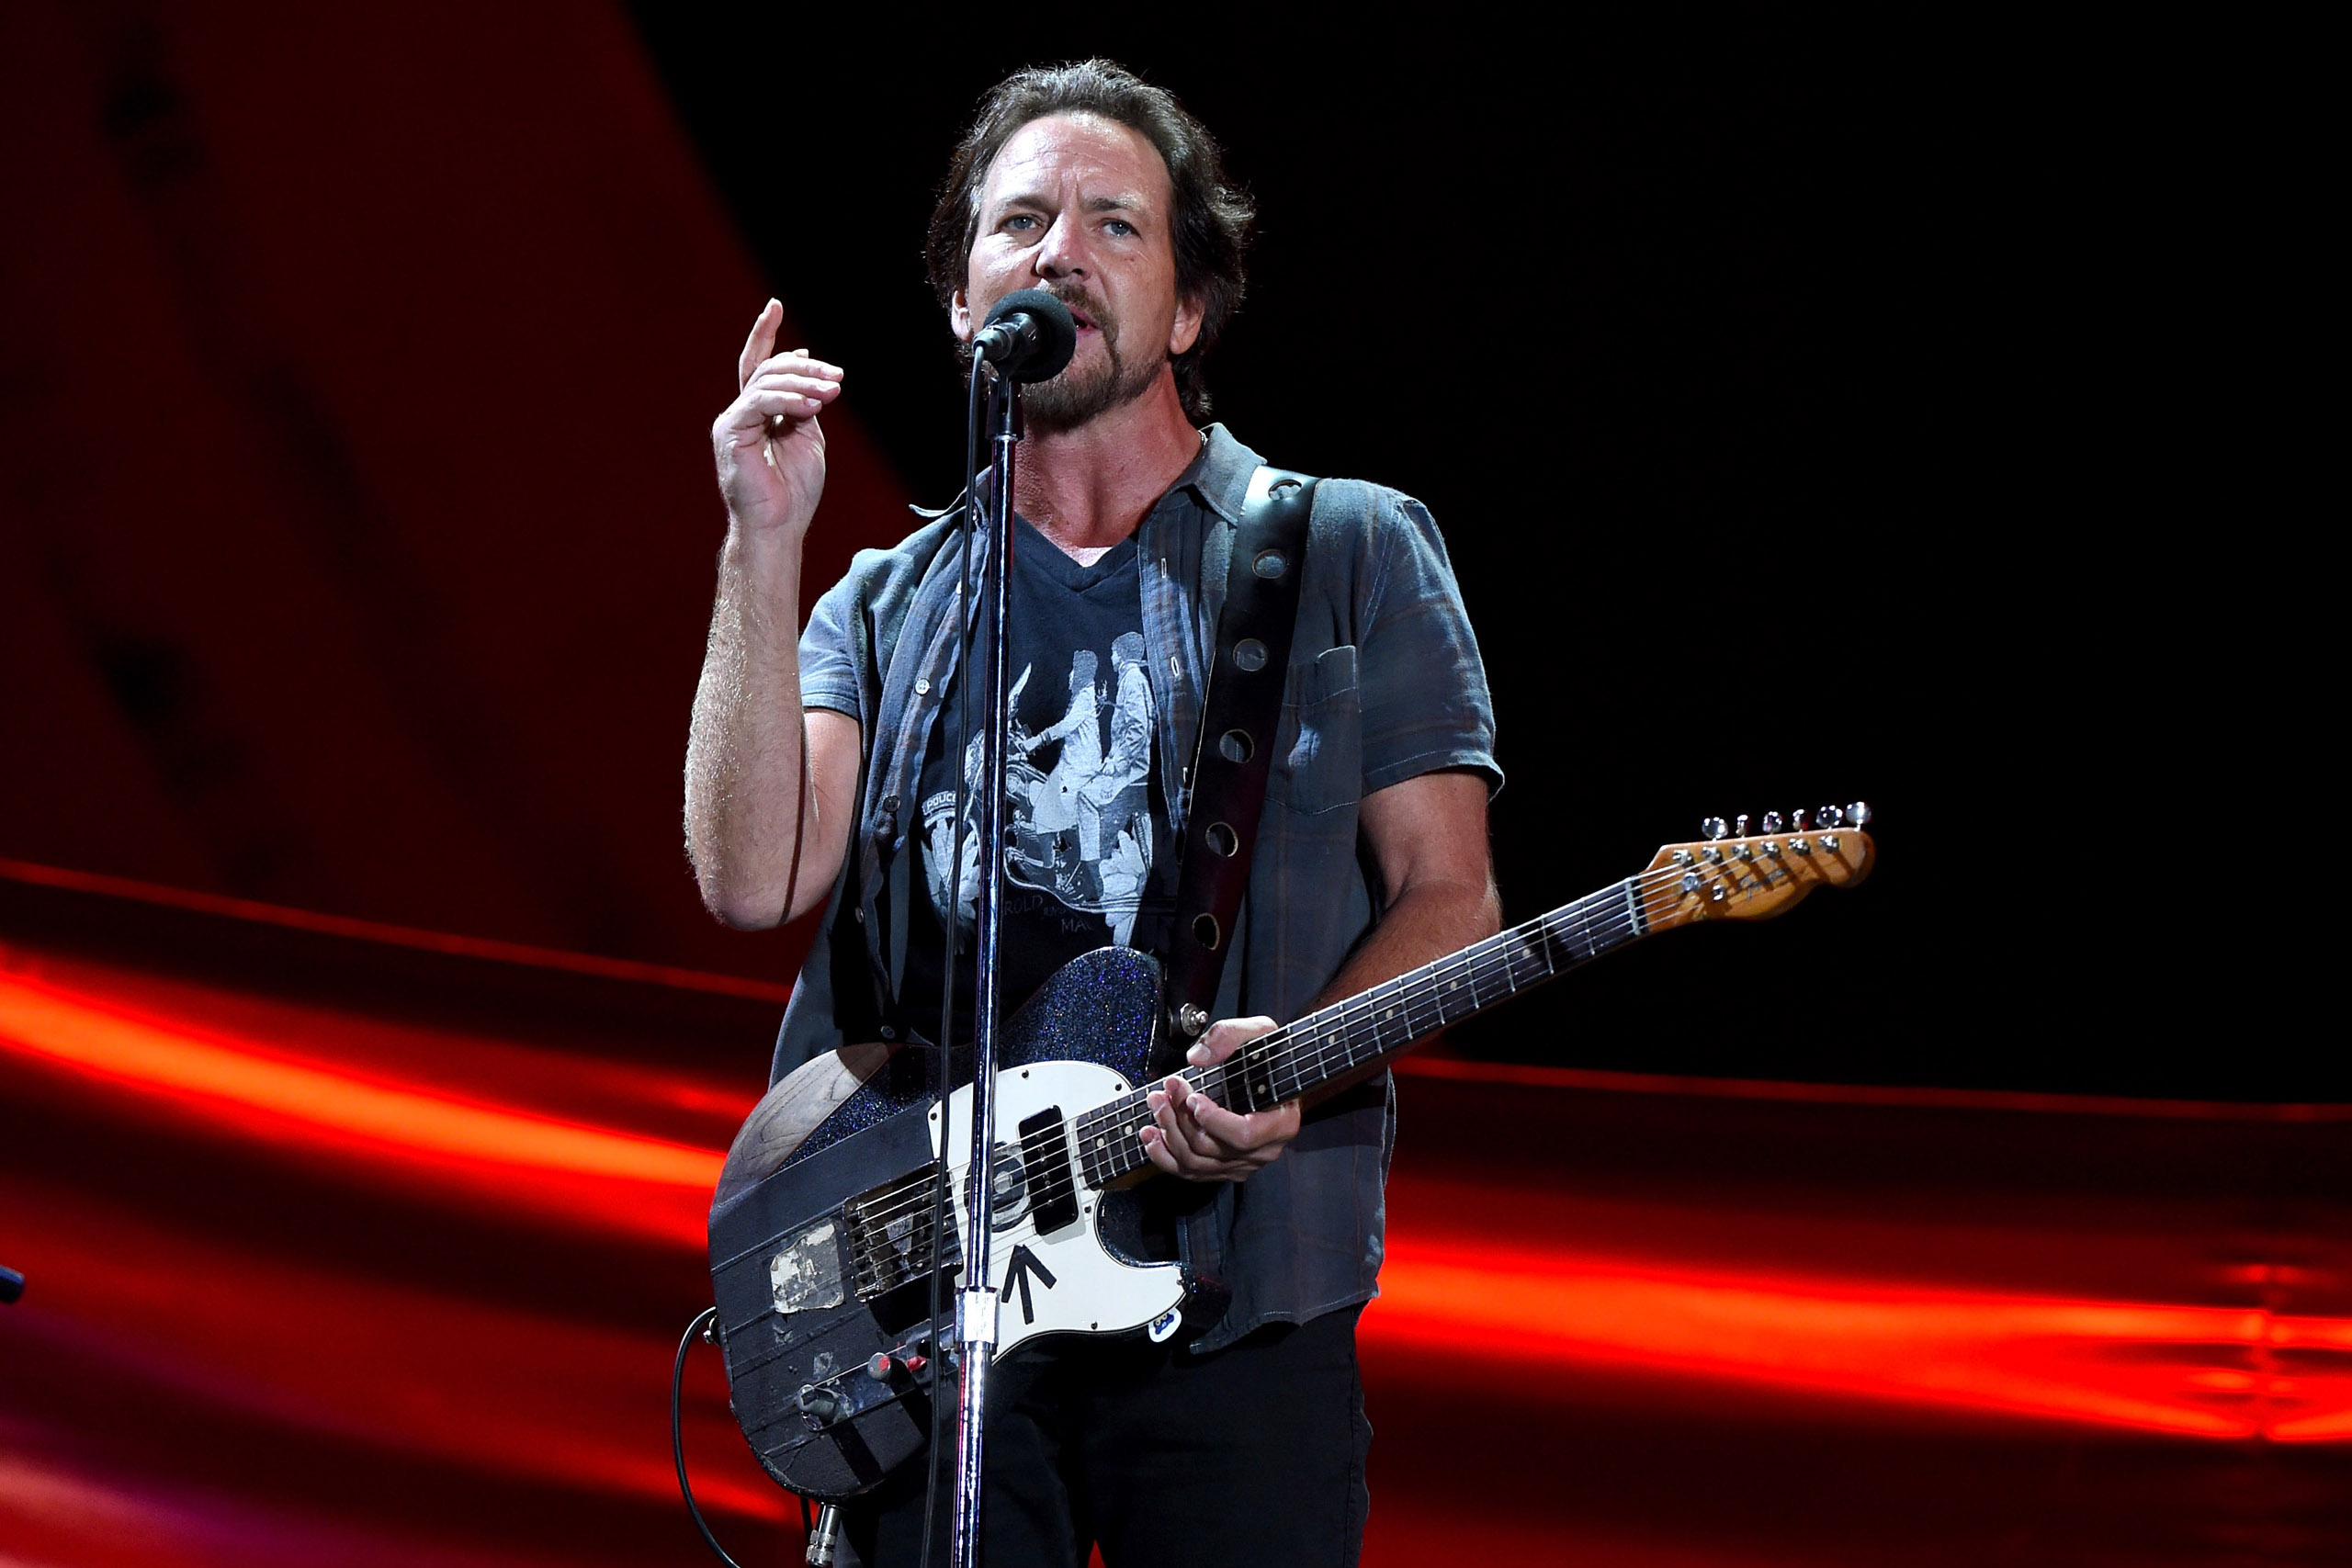 Eddie Vedder performs onstage at the 2016 Global Citizen Festival to End Extreme Poverty by 2030 at Central Park on Sept. 24, 2016.